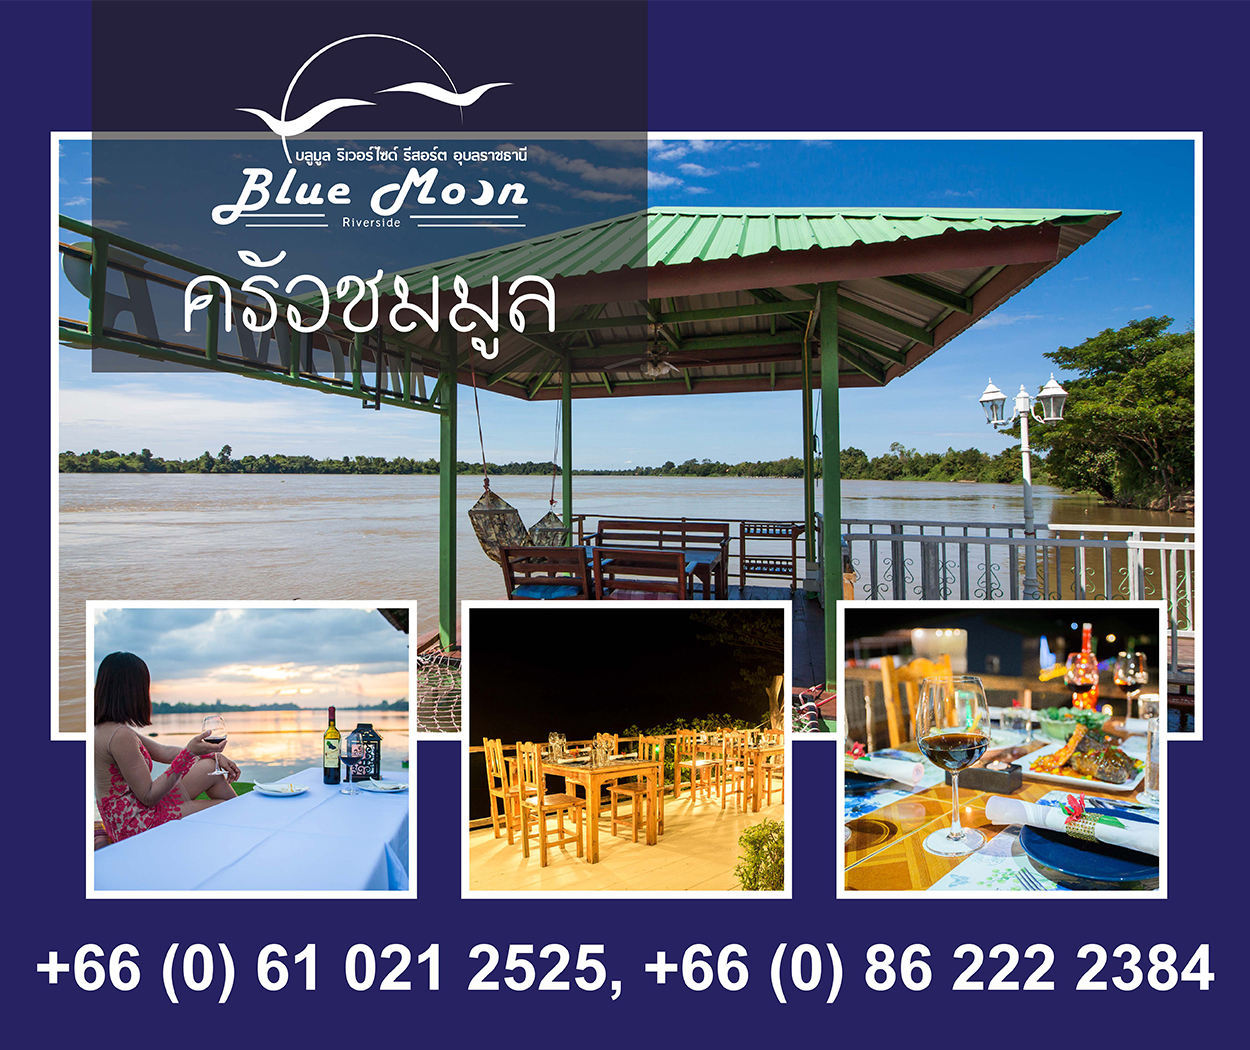 Bluemoon Riverside Resort Ubon Ratchathani Chommoon